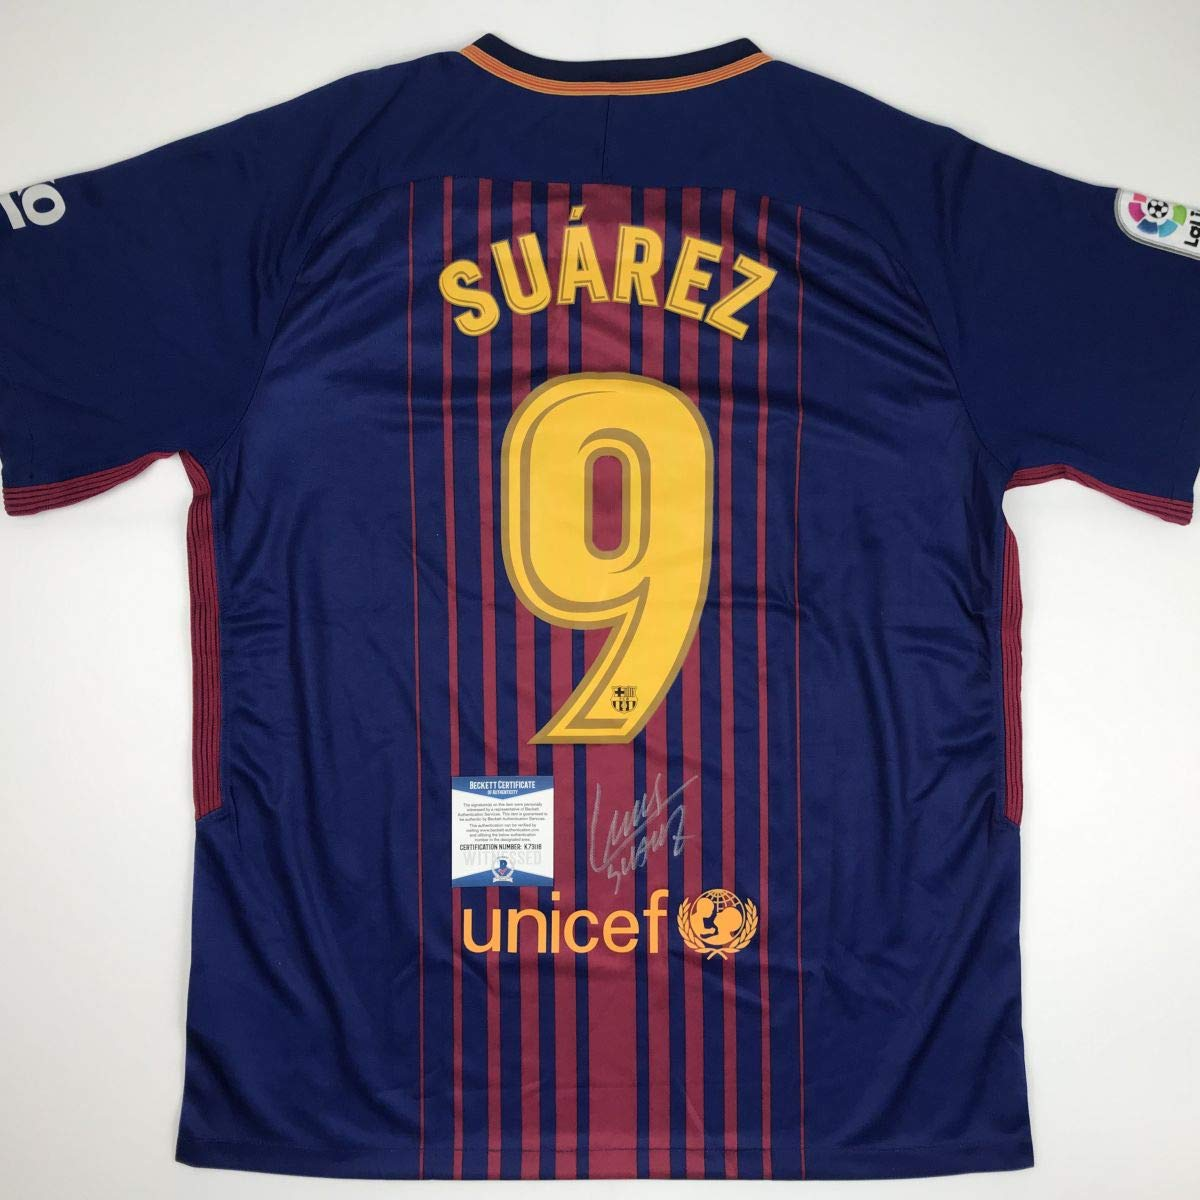 262a8440769 Autographed/Signed Luis Suarez FC Barcelona Red/Blue Soccer Futbol Jersey  Beckett BAS COA at Amazon's Sports Collectibles Store